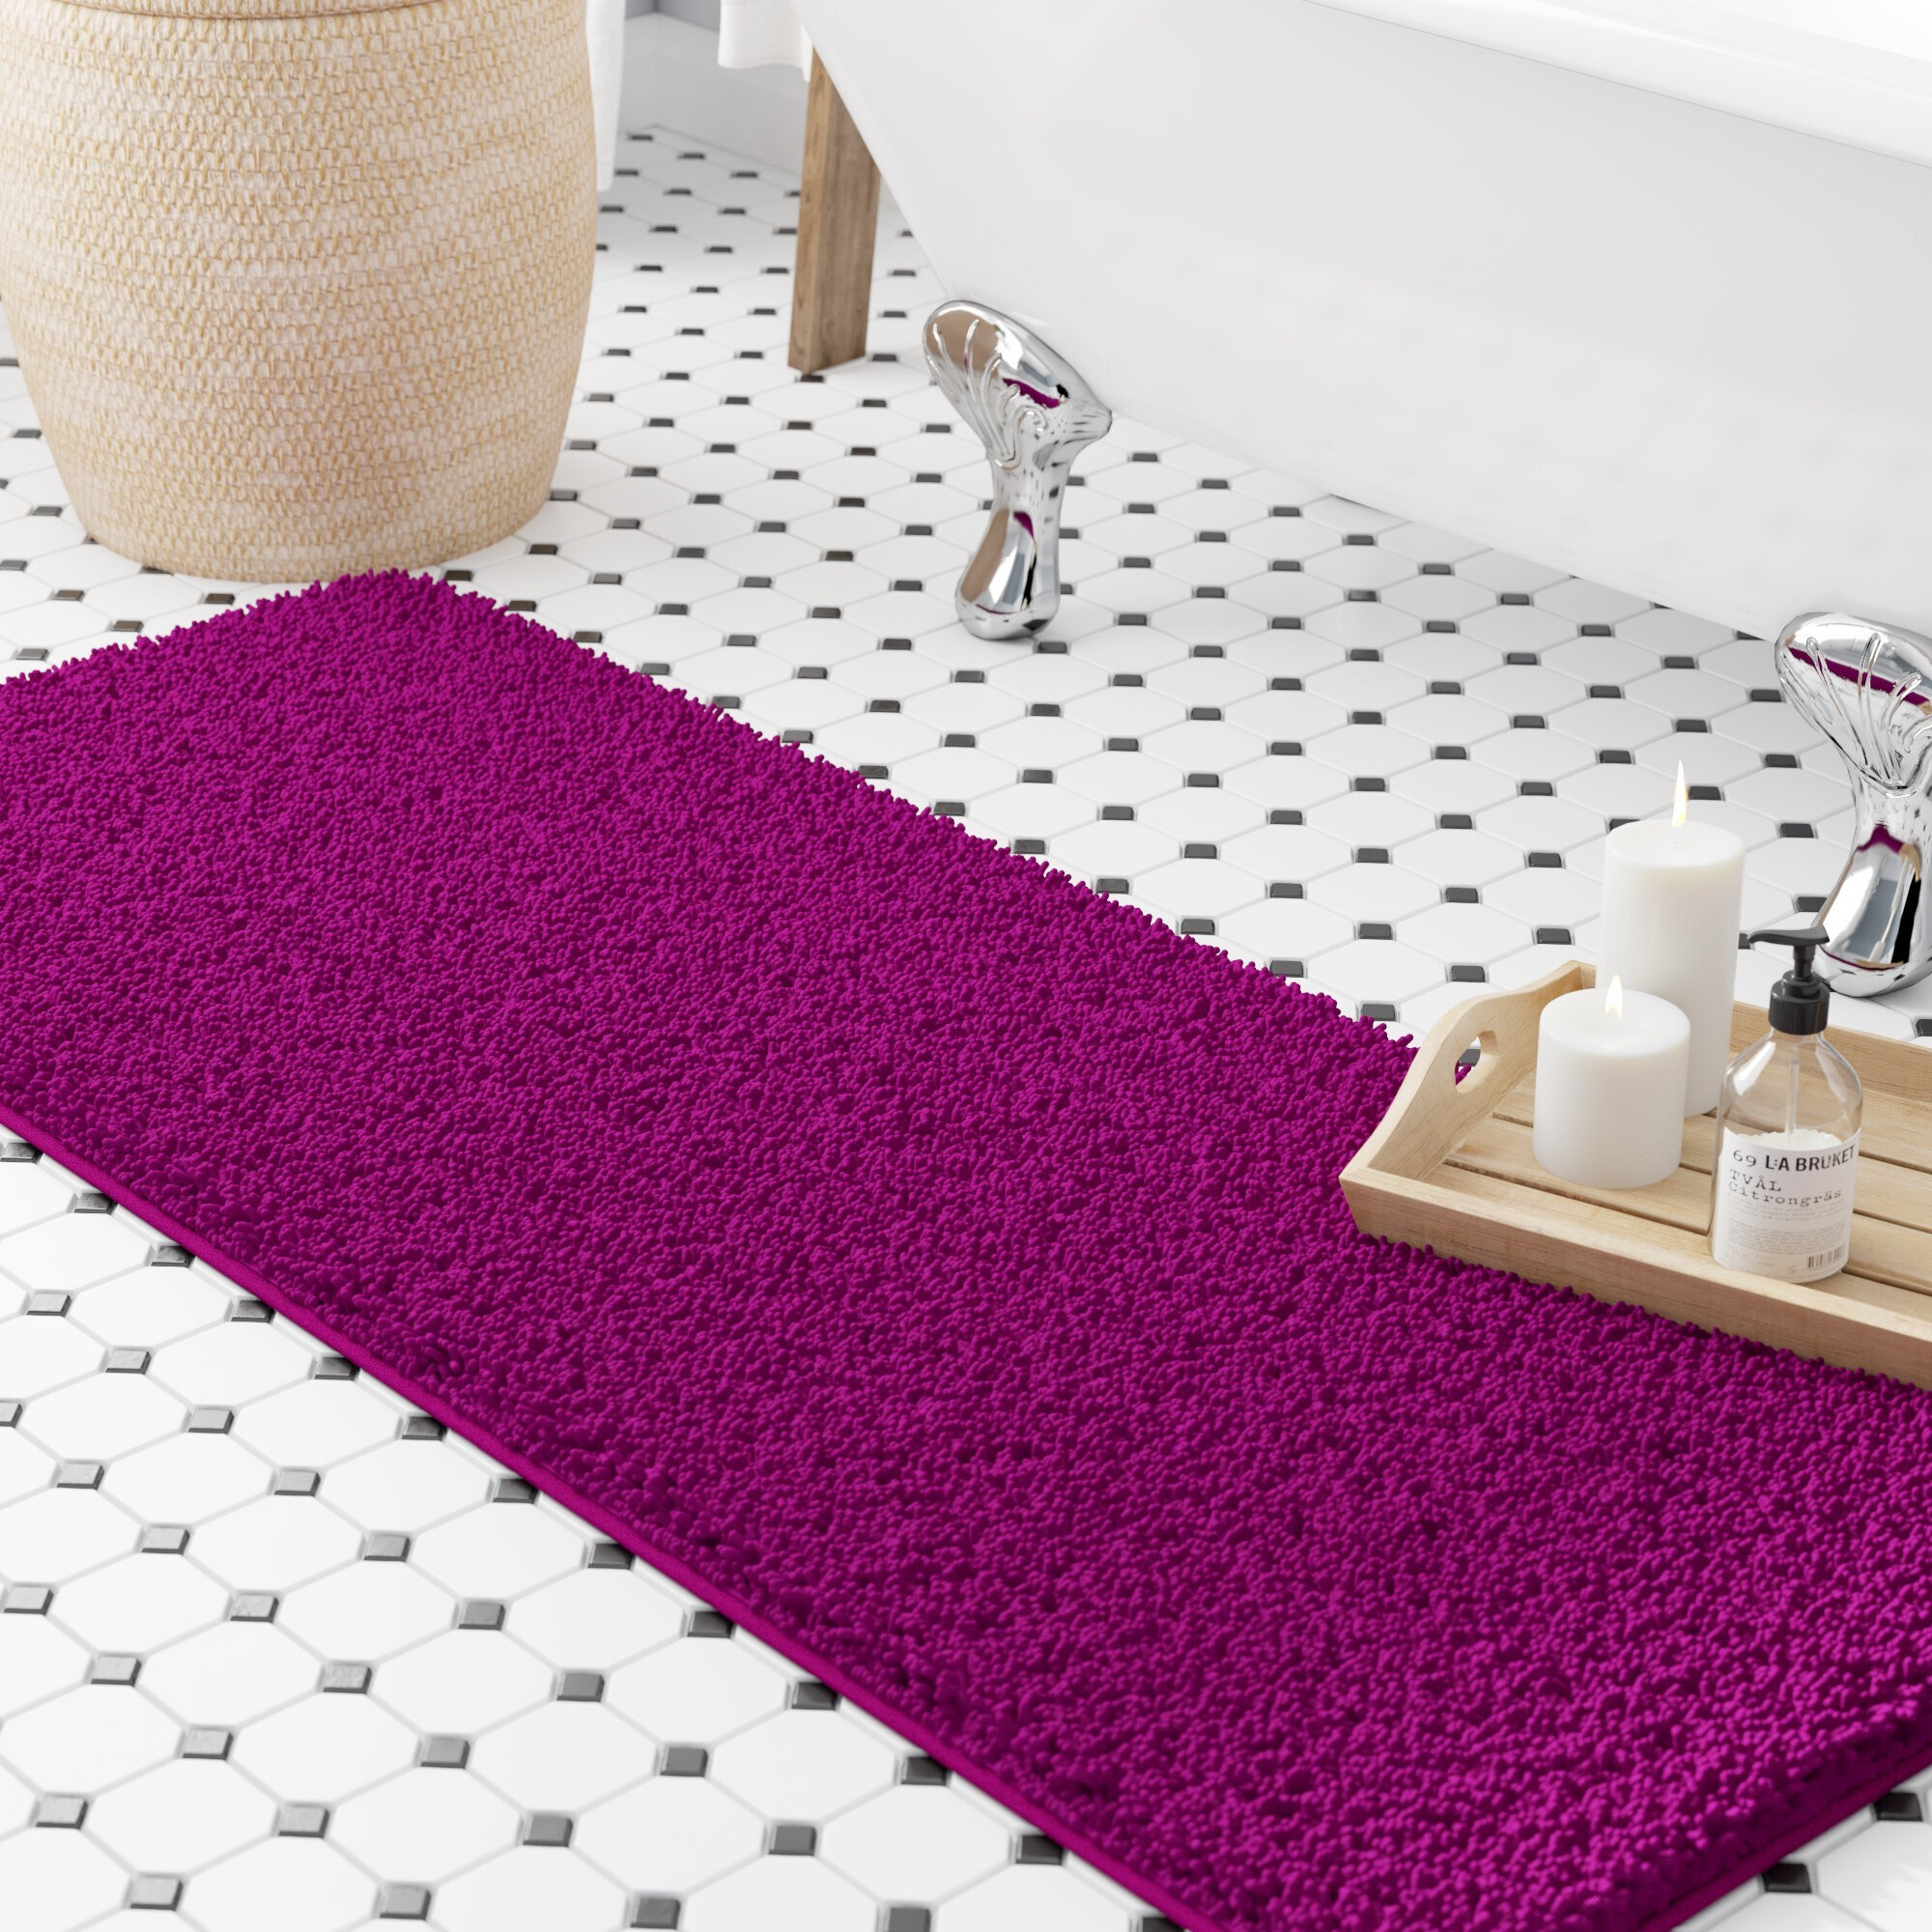 How To Choose Bath Rugs & Mats